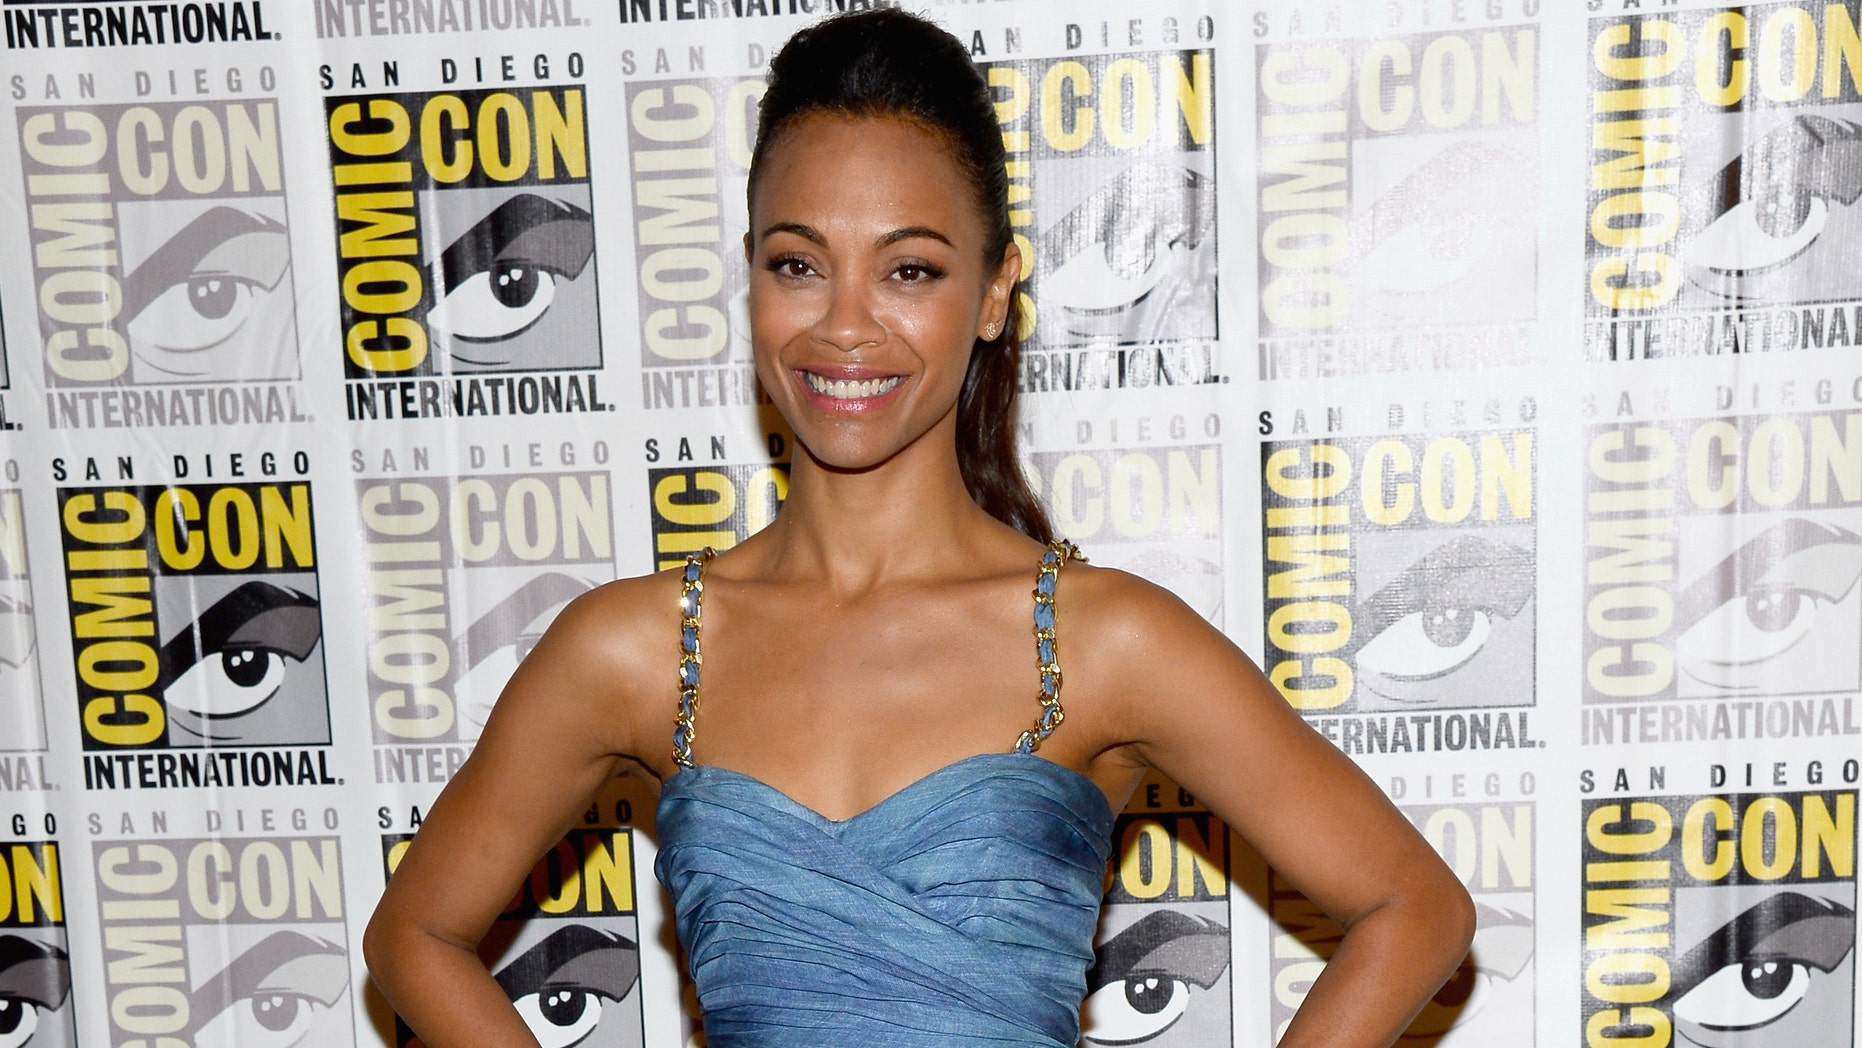 """Actress Zoe Saldana attends Marvel's """"Guardians of The Galaxy"""" during Comic-Con International 2013 at Hilton San Diego Bayfront Hotel on July 20, 2013 in San Diego, California."""